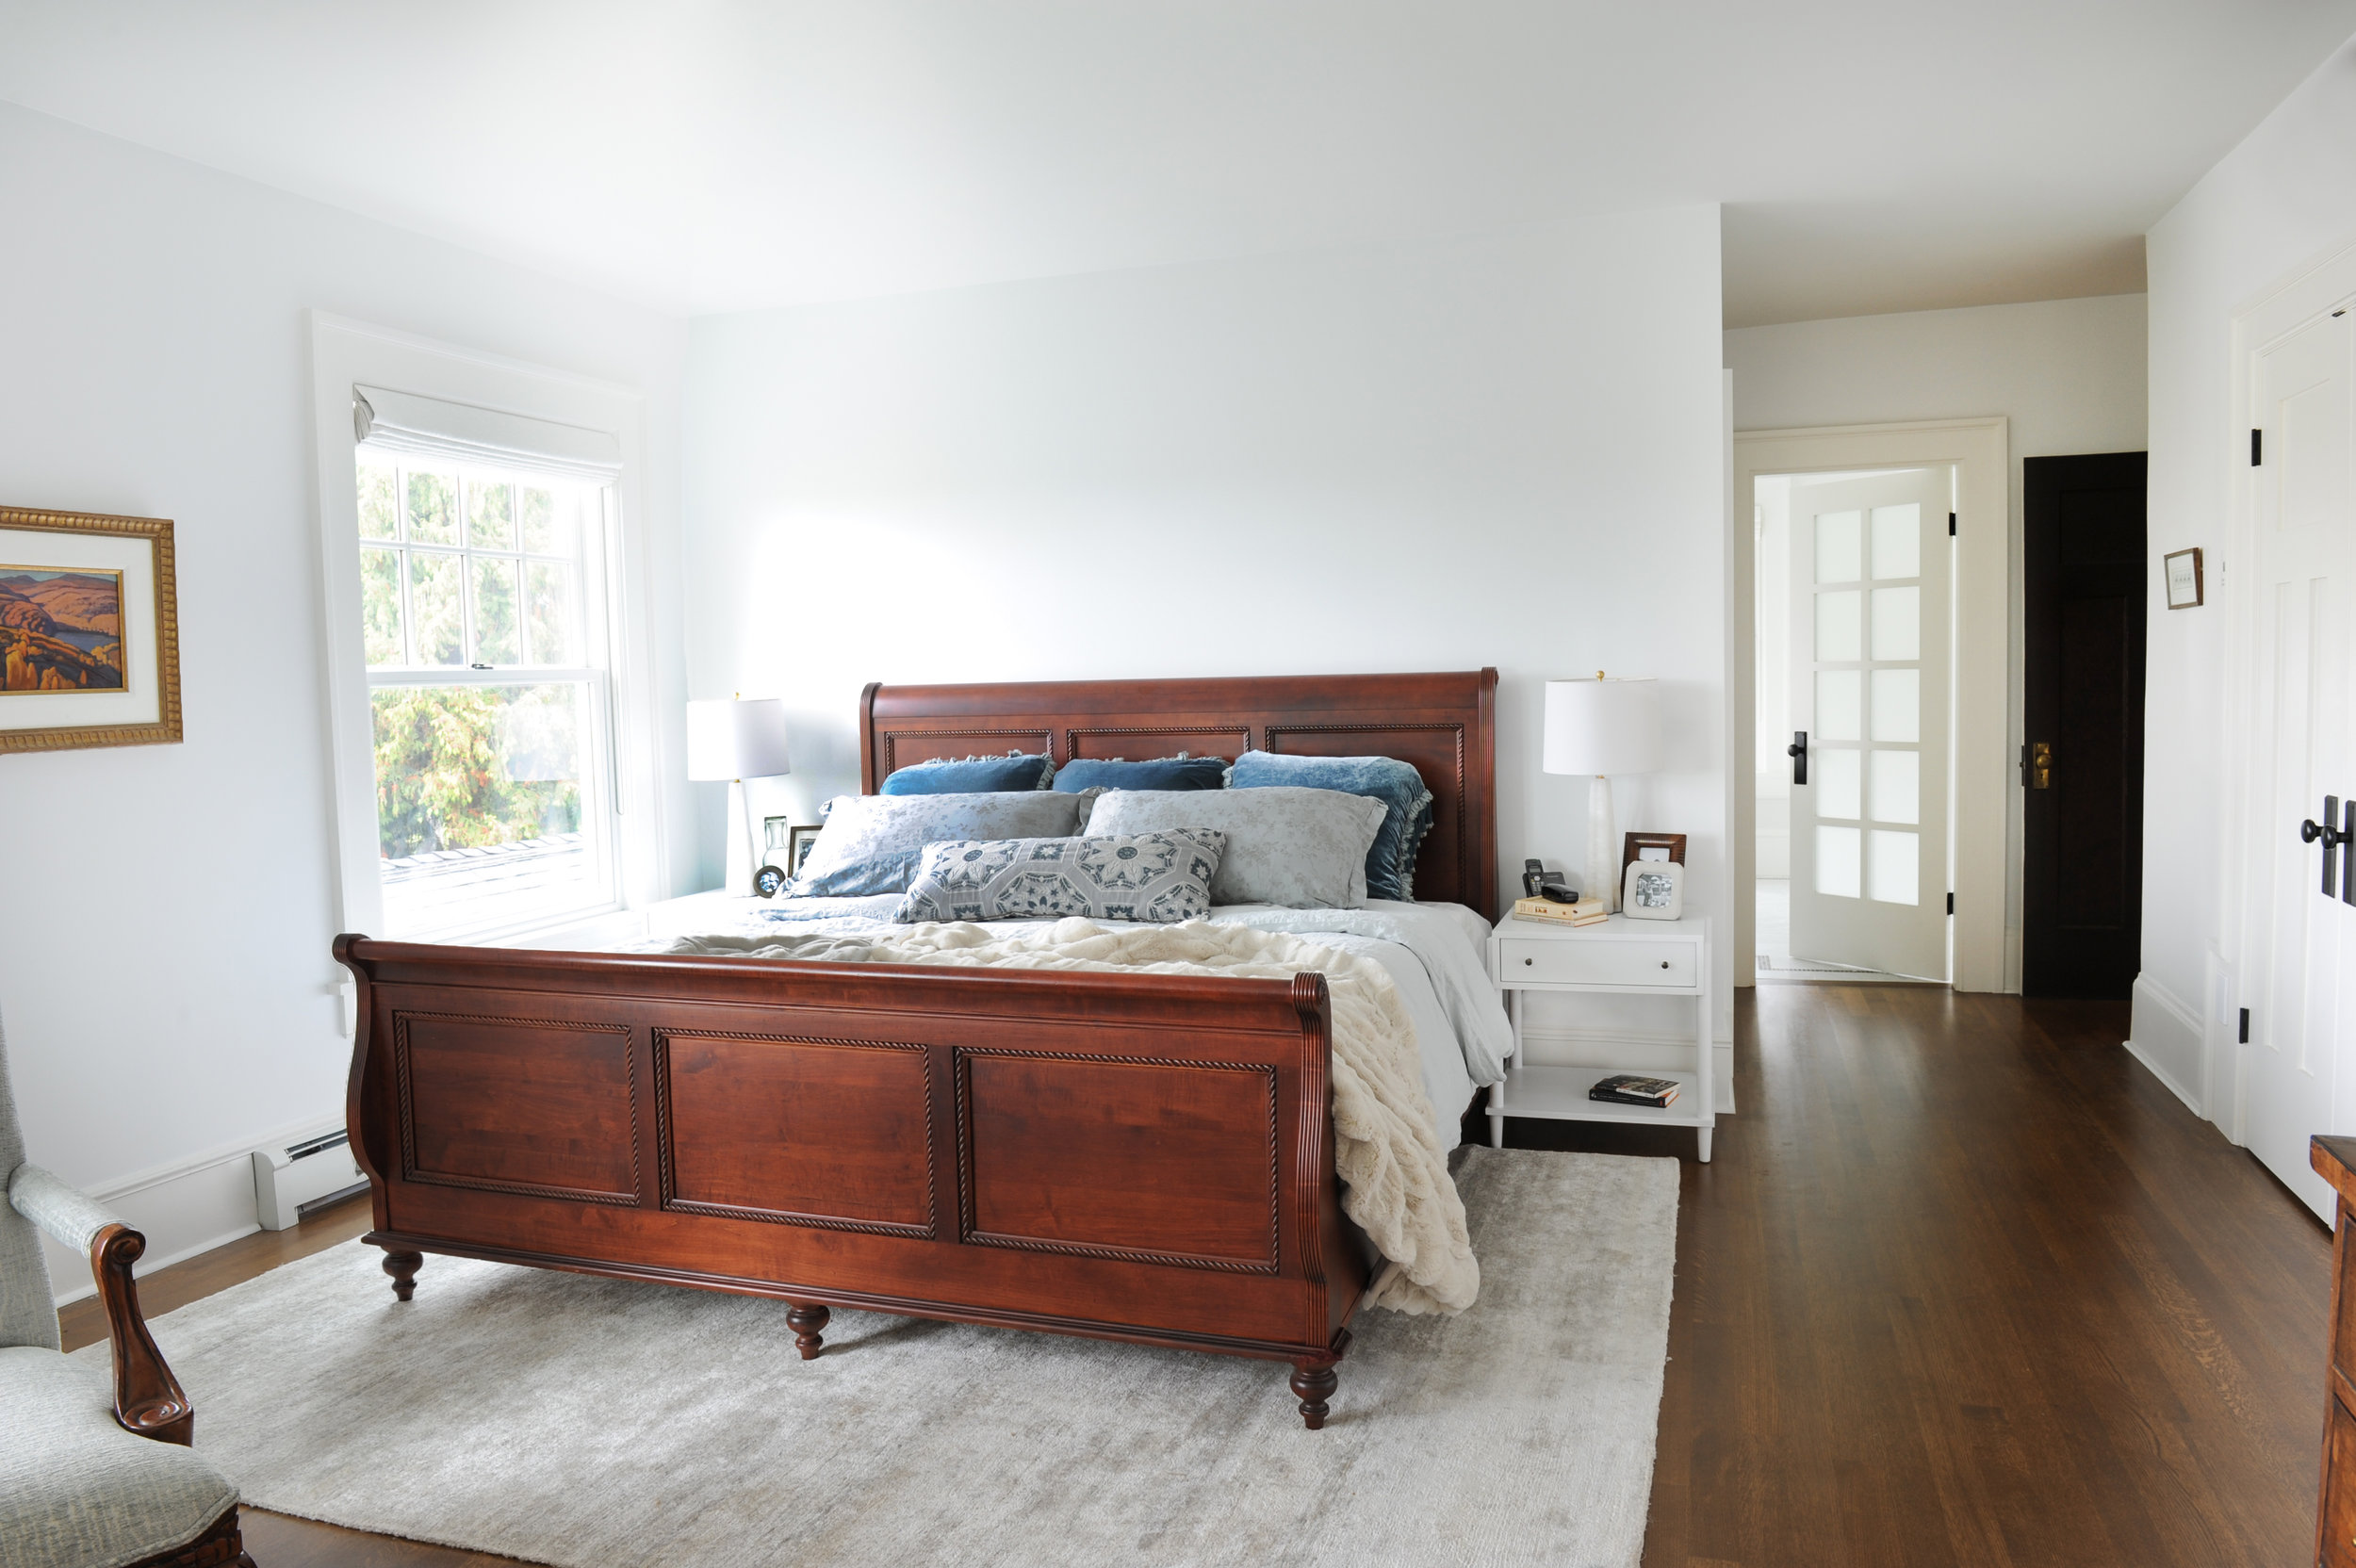 A rich dark wood sleigh bed sits in a bedroom on top of a large area rug. There is a large window to the right of the bed. Beside the window hangs a landscape painting in a wooden frame.